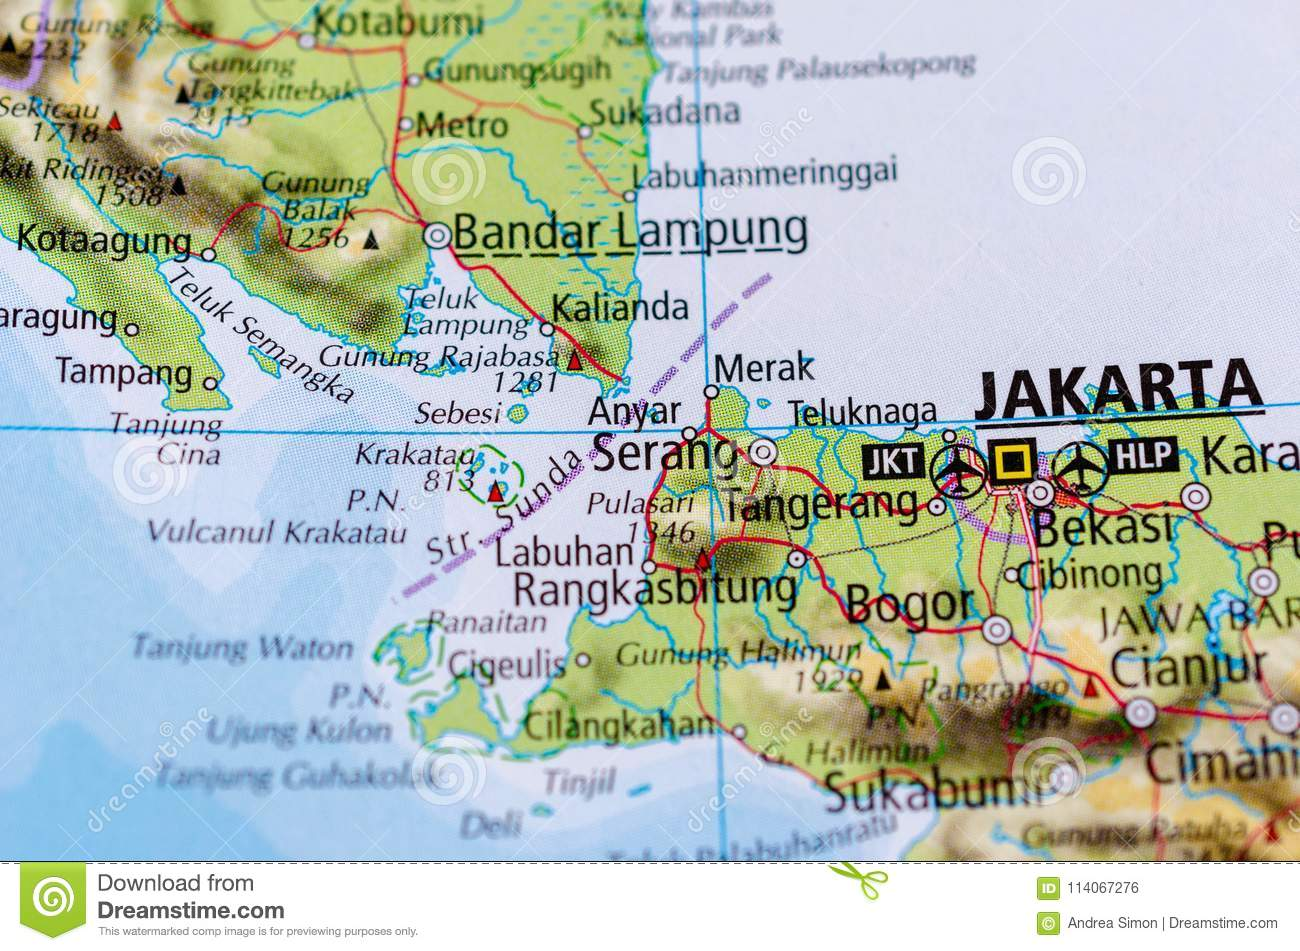 Singapore on map stock photo. Image of continent, city - 114067276